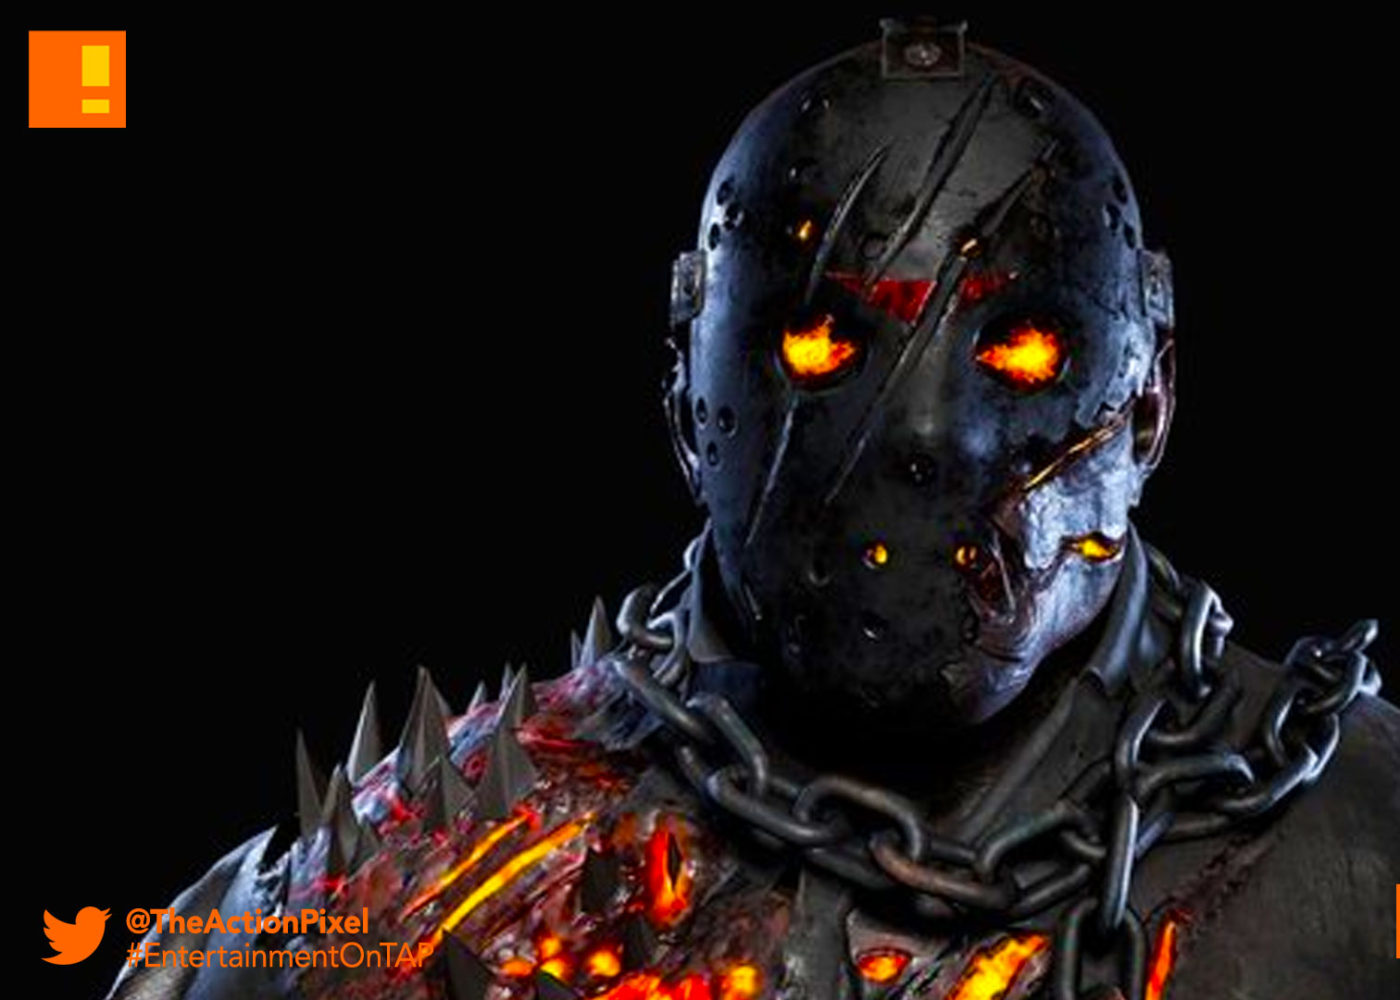 jason voorhees,friday the 13th, friday the 13th: the game, friday 13th, Tom Savini, gun media